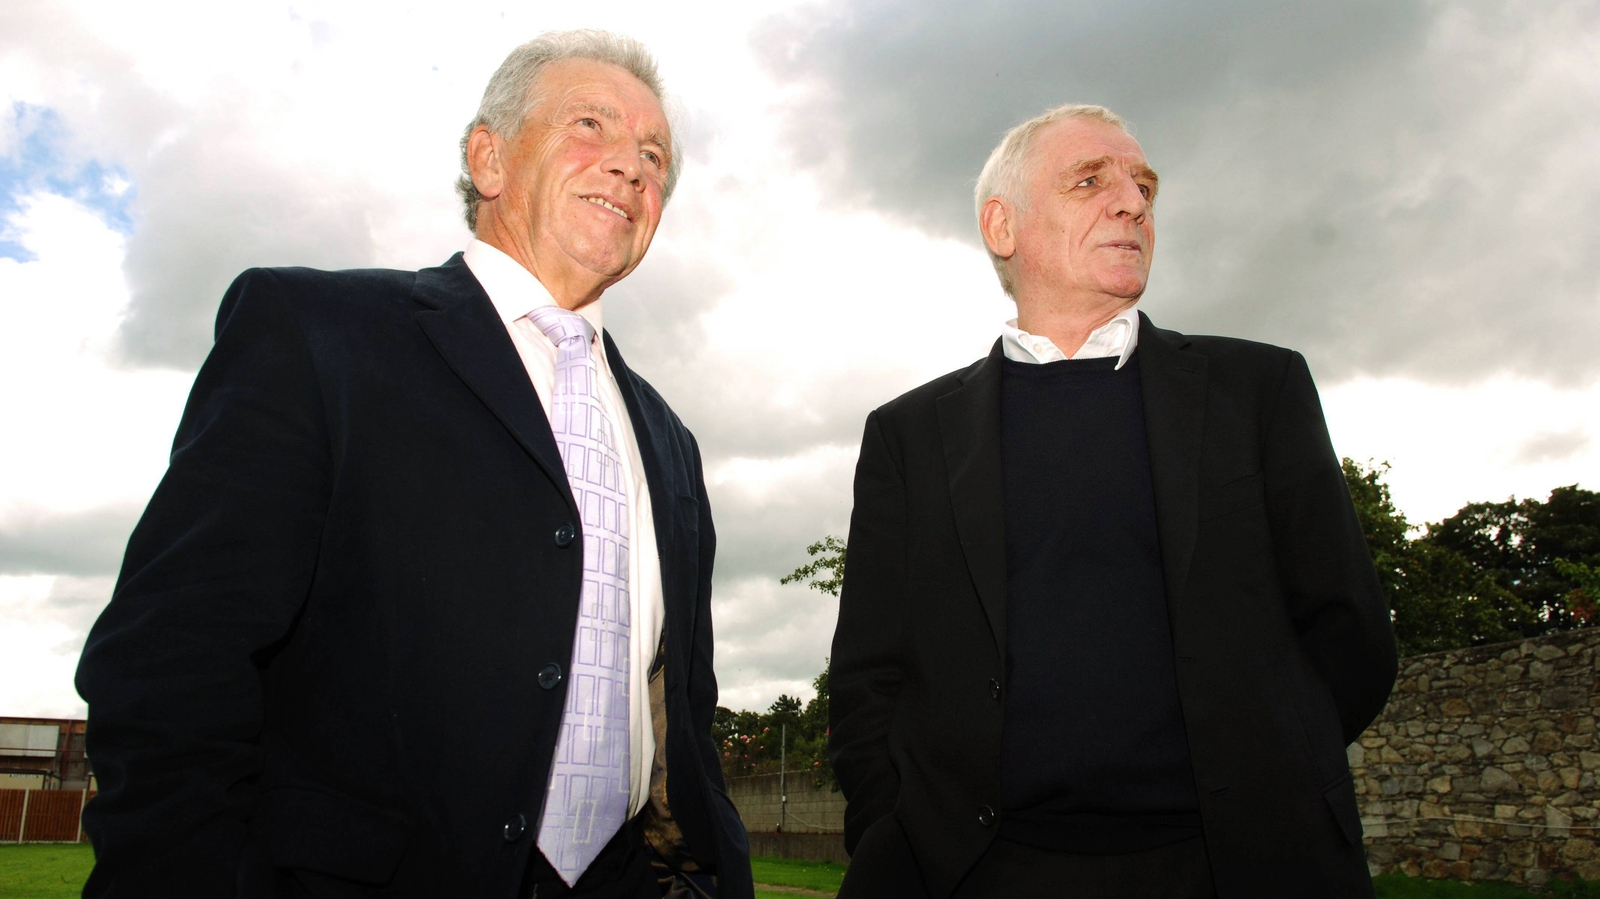 Image - John Giles and Eamon Dunphy soldiered during this era